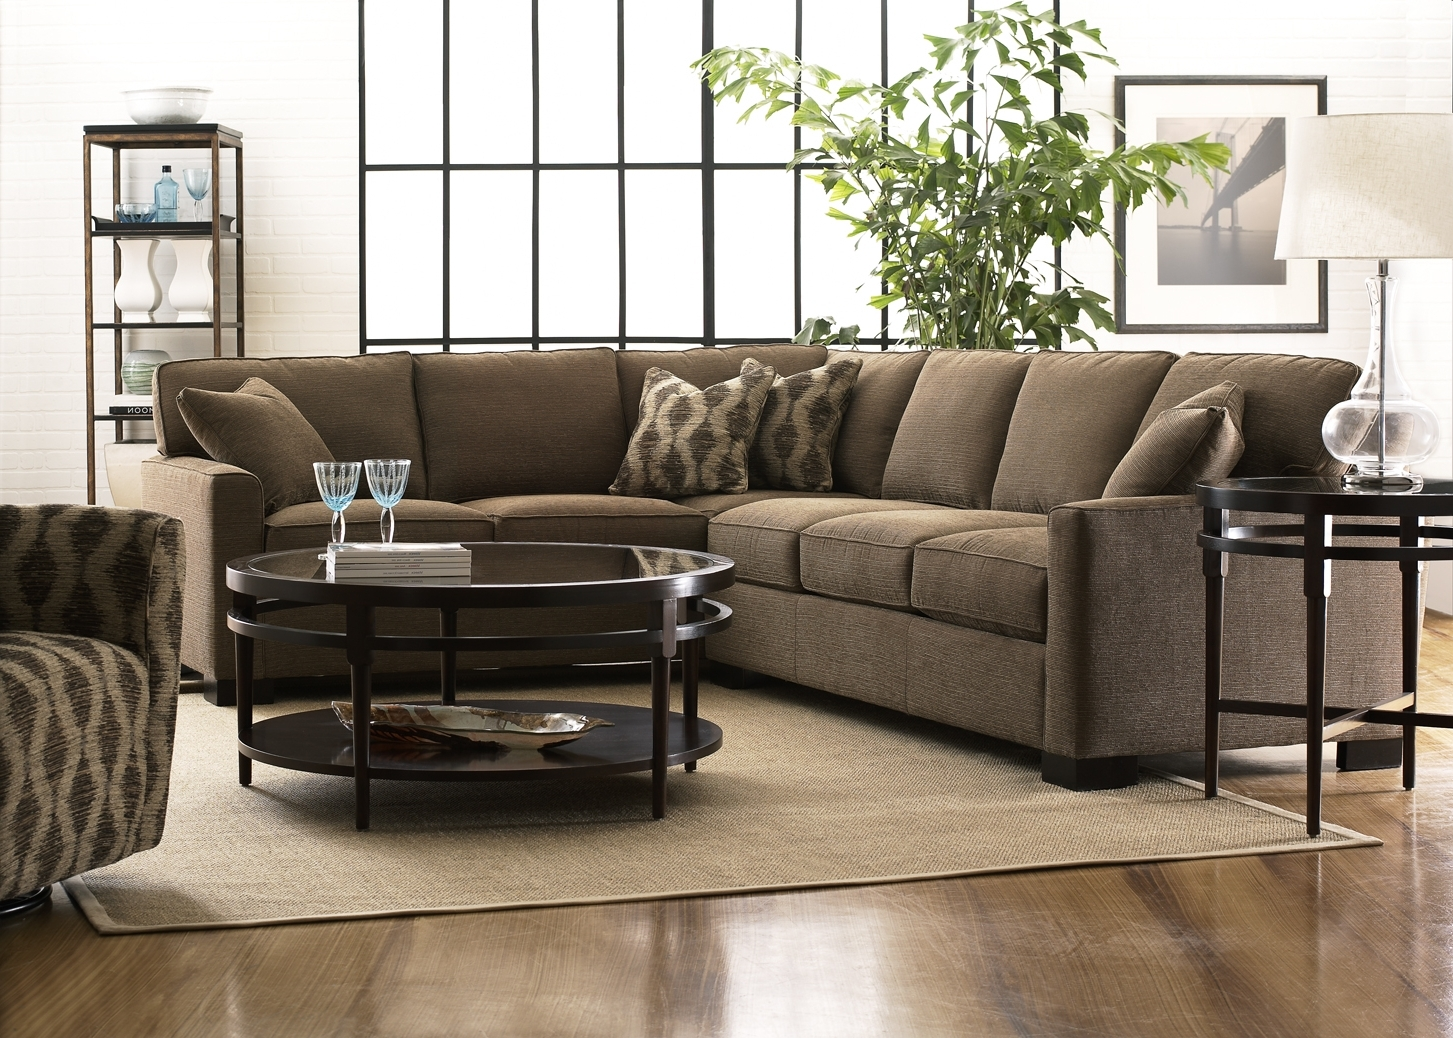 Well Known Sectional Sofas For Small Spaces With Recliners Pertaining To Dining Room Furniture Small Spaces Apartment Sized Furniture (View 13 of 20)